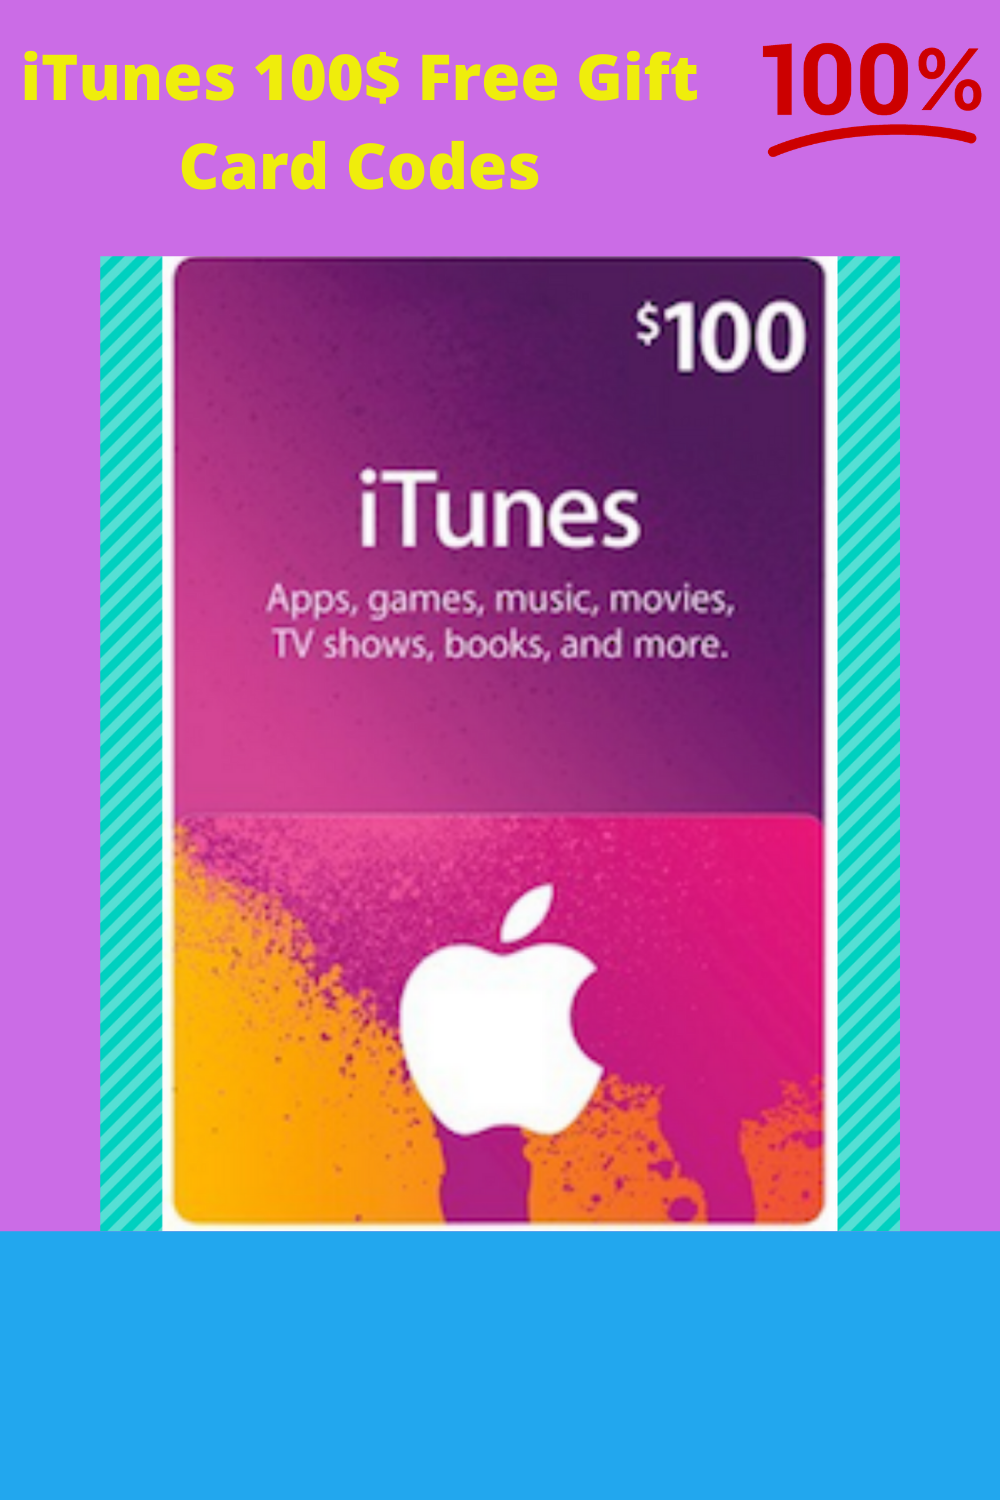 Free 100 Itunes Gift Card Codes Free Itunes Gift Card Itunes Gift Cards Itunes Card Codes